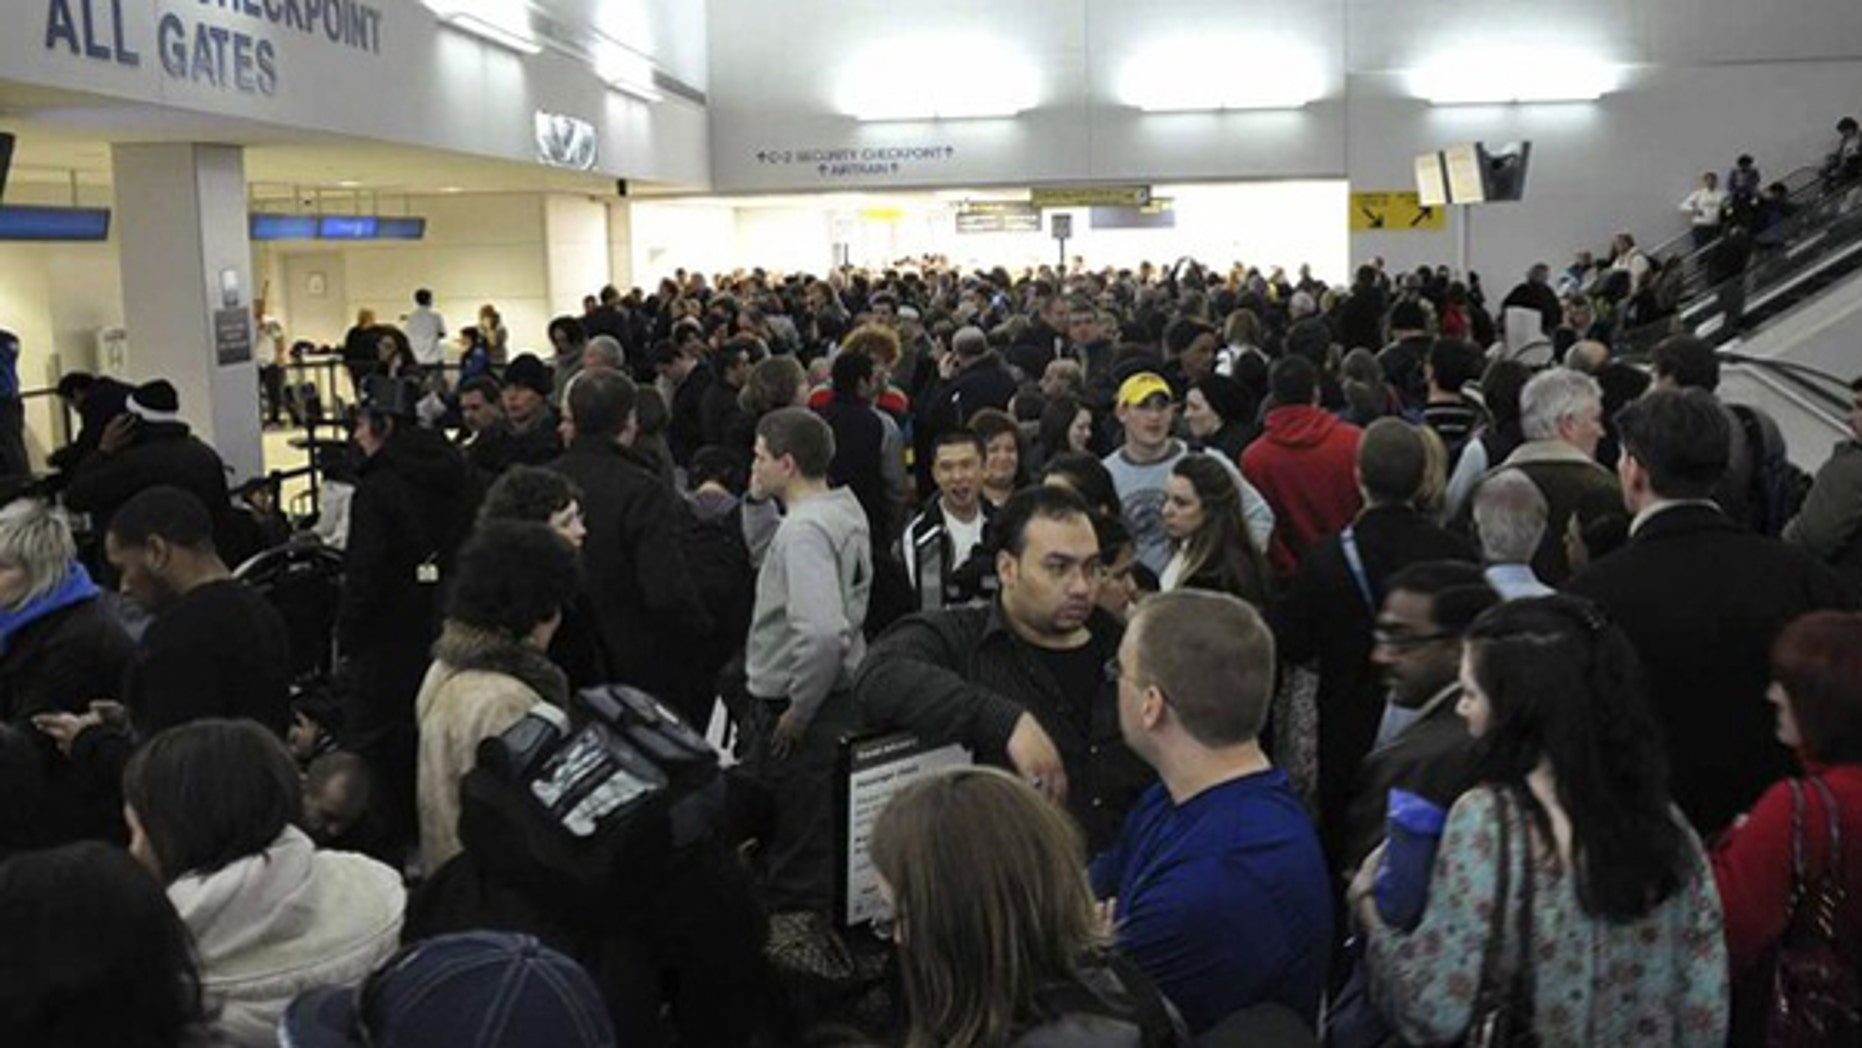 Passengers wait to be re-screened in front of the security checkpoint at Terminal C at Newark International Airport in Newark, New Jersey January 3, 2010. (Reuters)